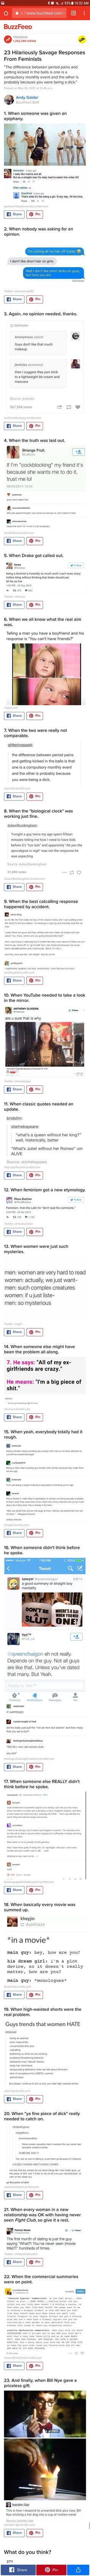 Feminism at it's finest (https://www.google.com/amp/s/www.buzzfeed.com/amphtml/andyneuenschwander/23-hilarious-posts-for-feminists-who-are-pretty-muc)